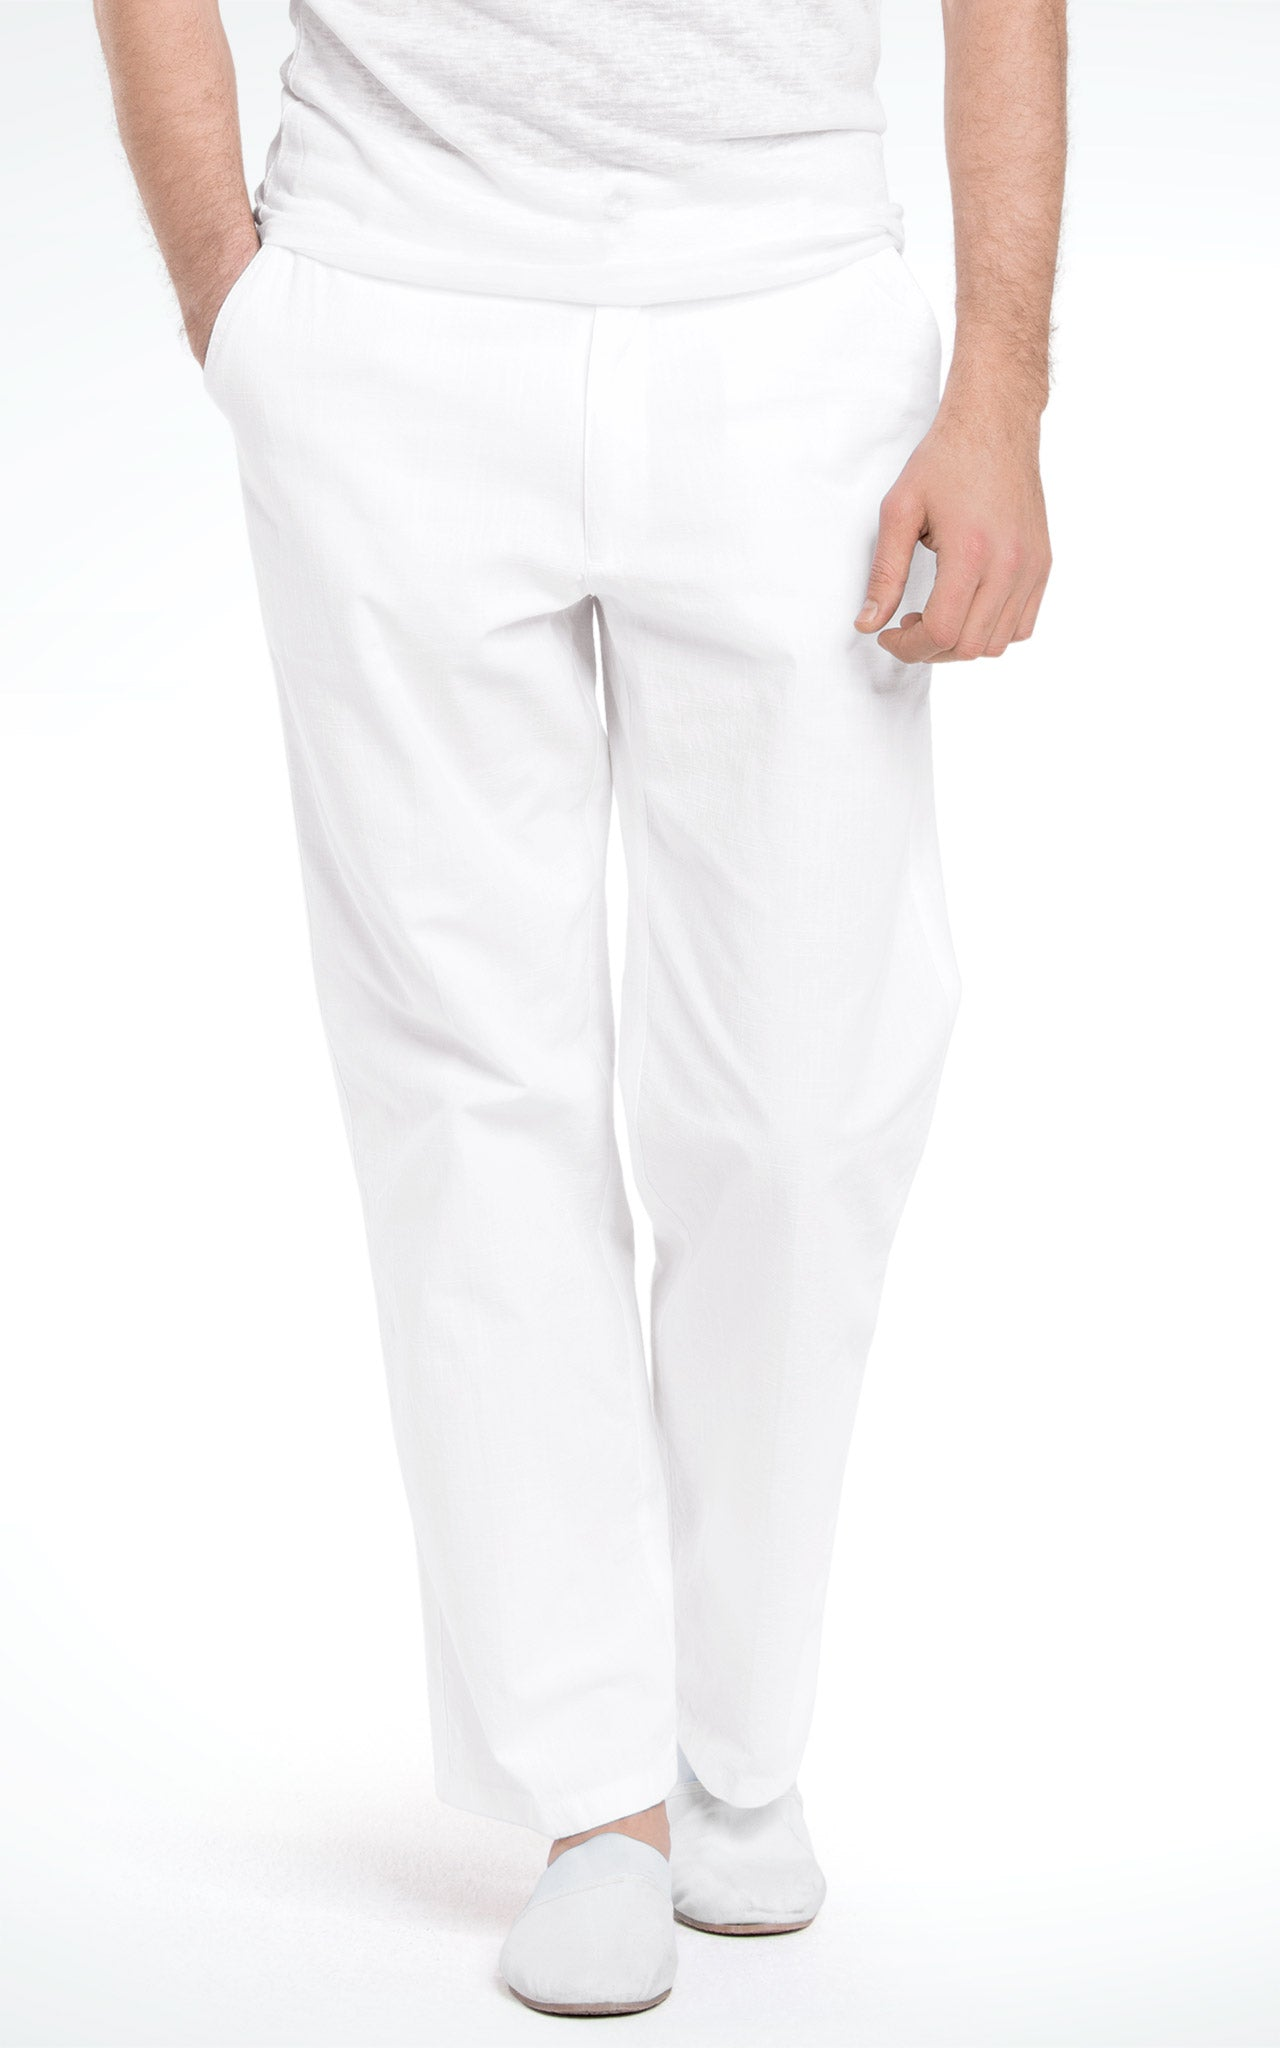 great discount high quality selected material Men's Relaxed Casual Cotton Beach Pants